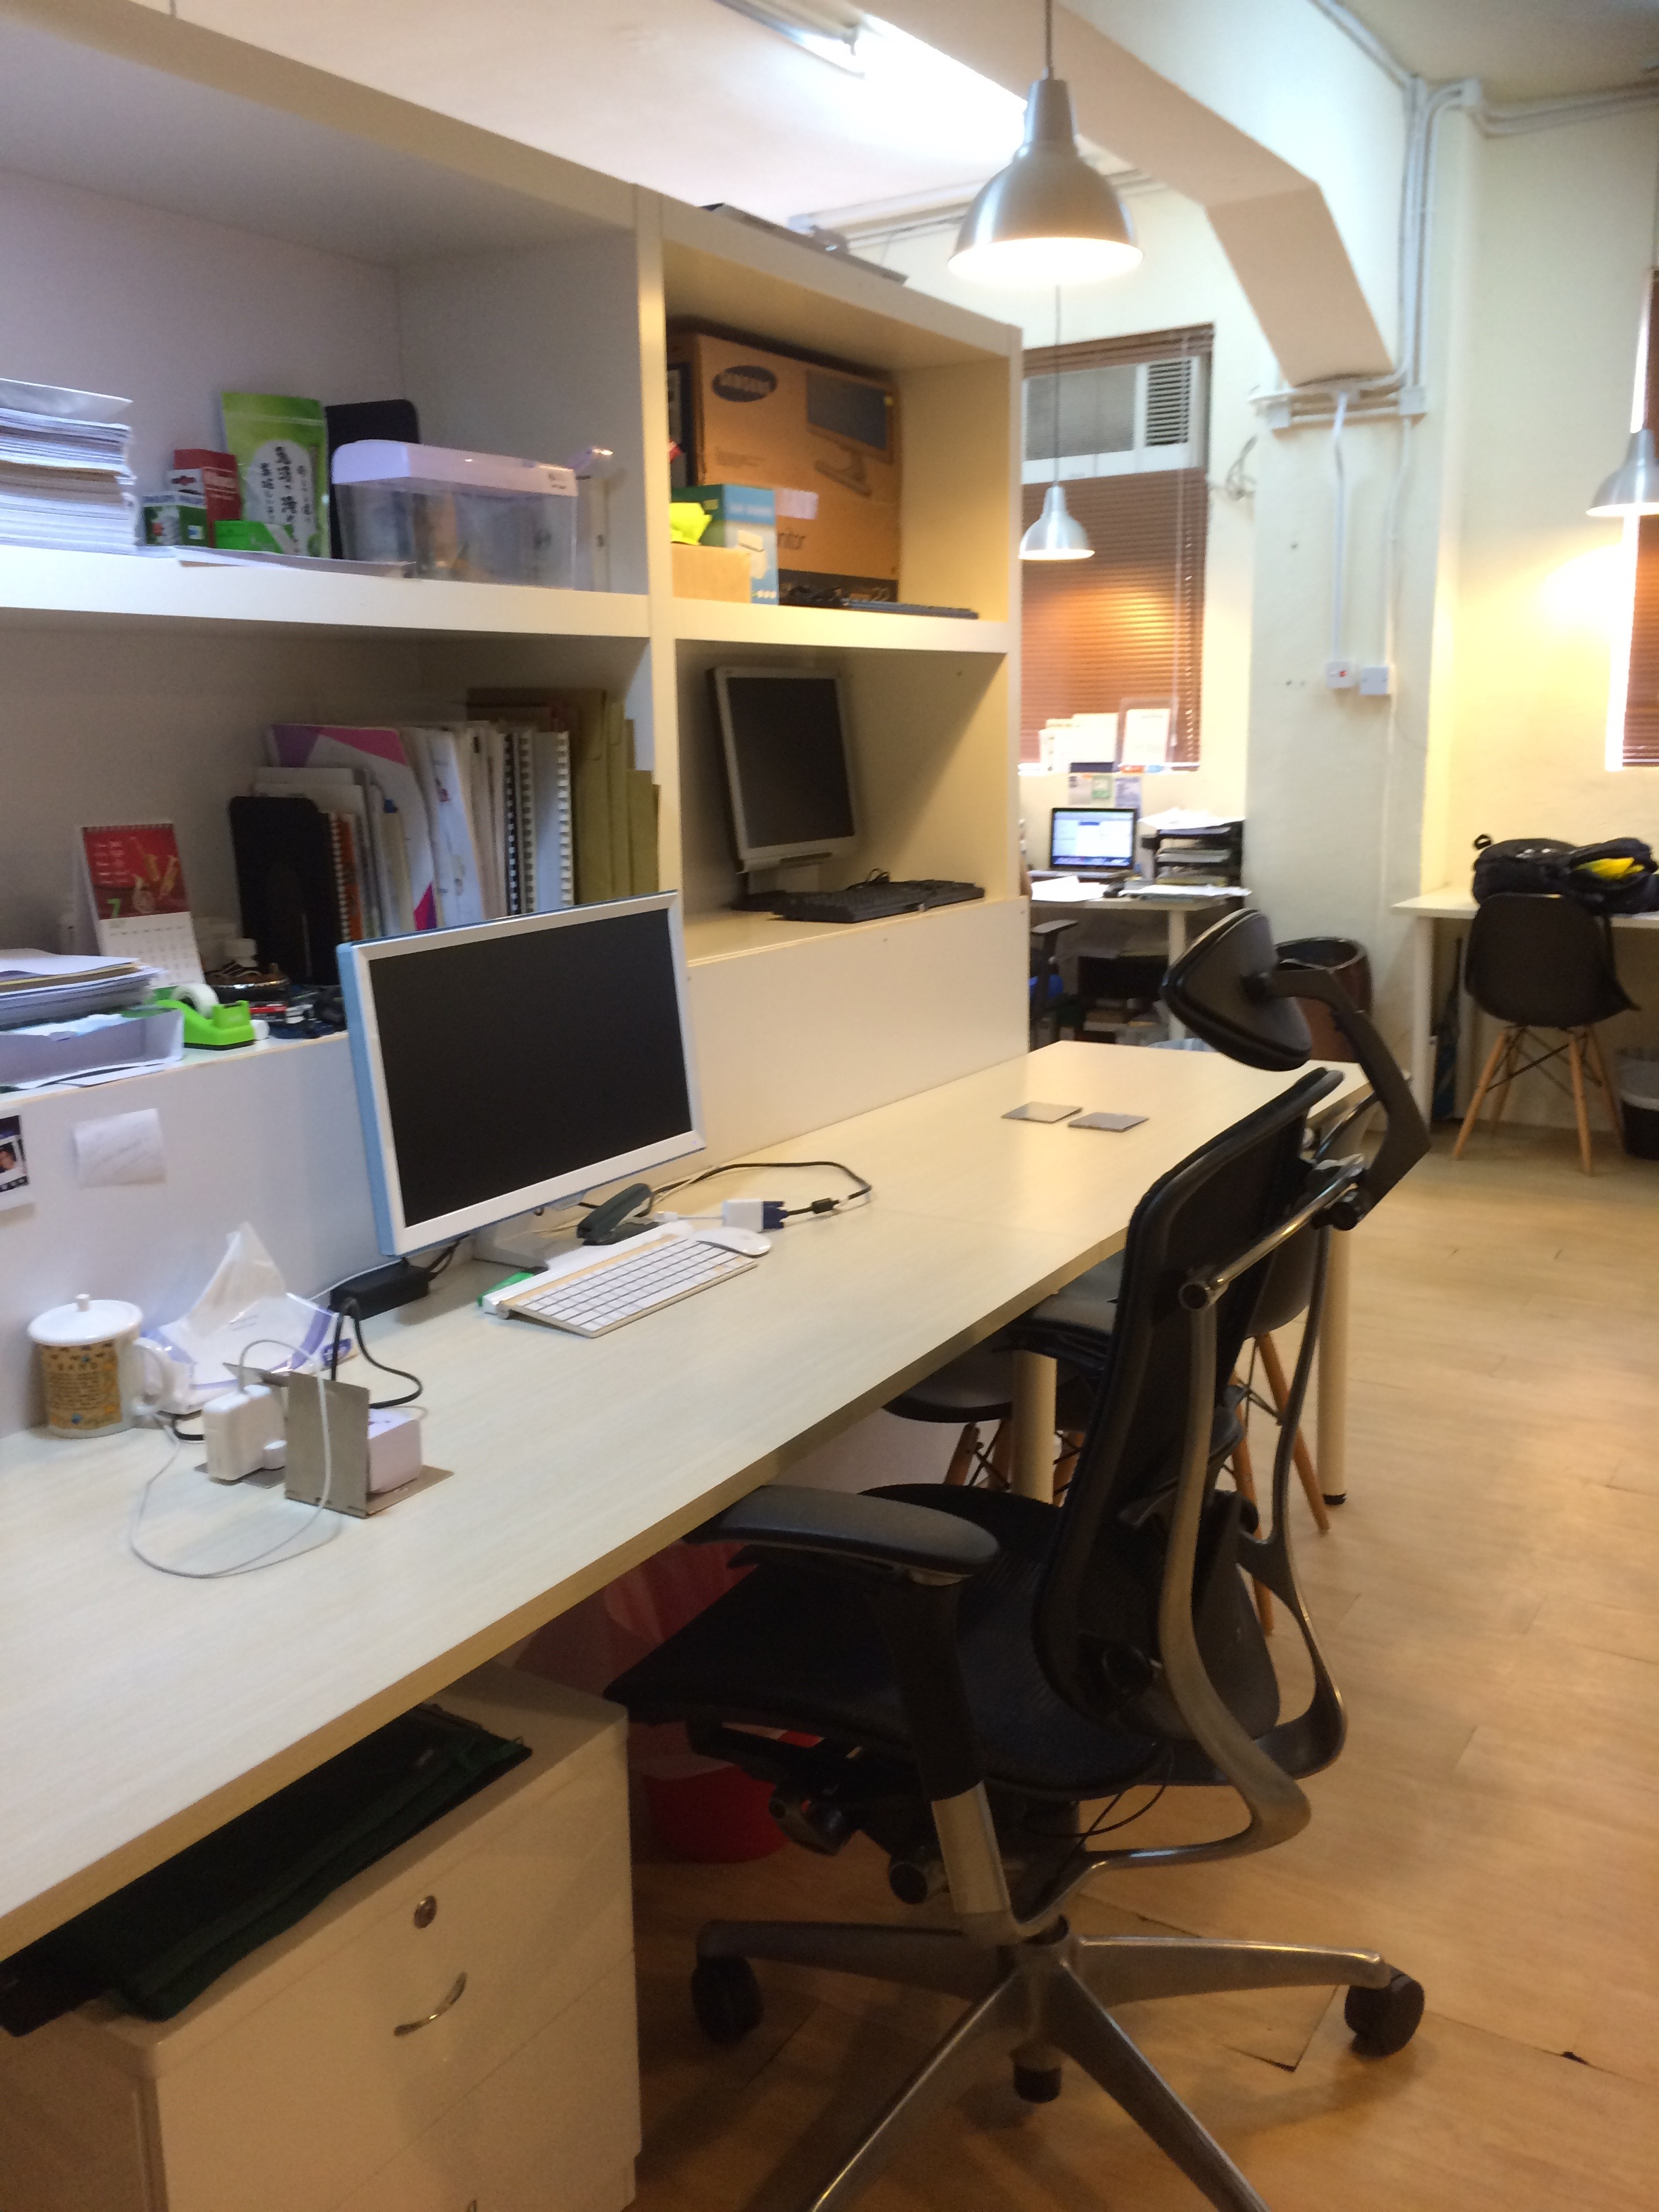 Retro Spot – Shared Office Space in Hong Kong